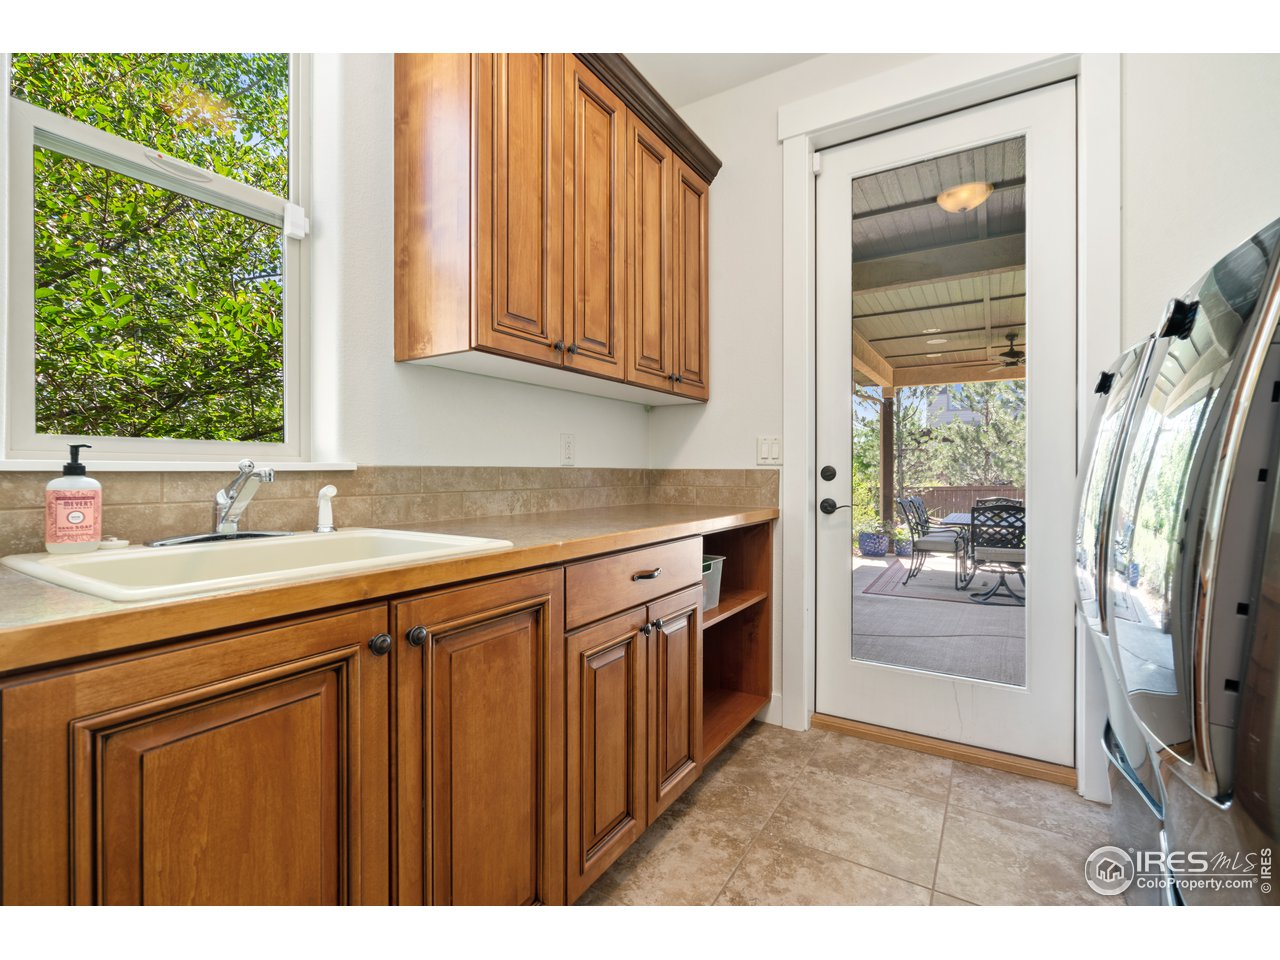 Laundry Room with Hand Washing Sink